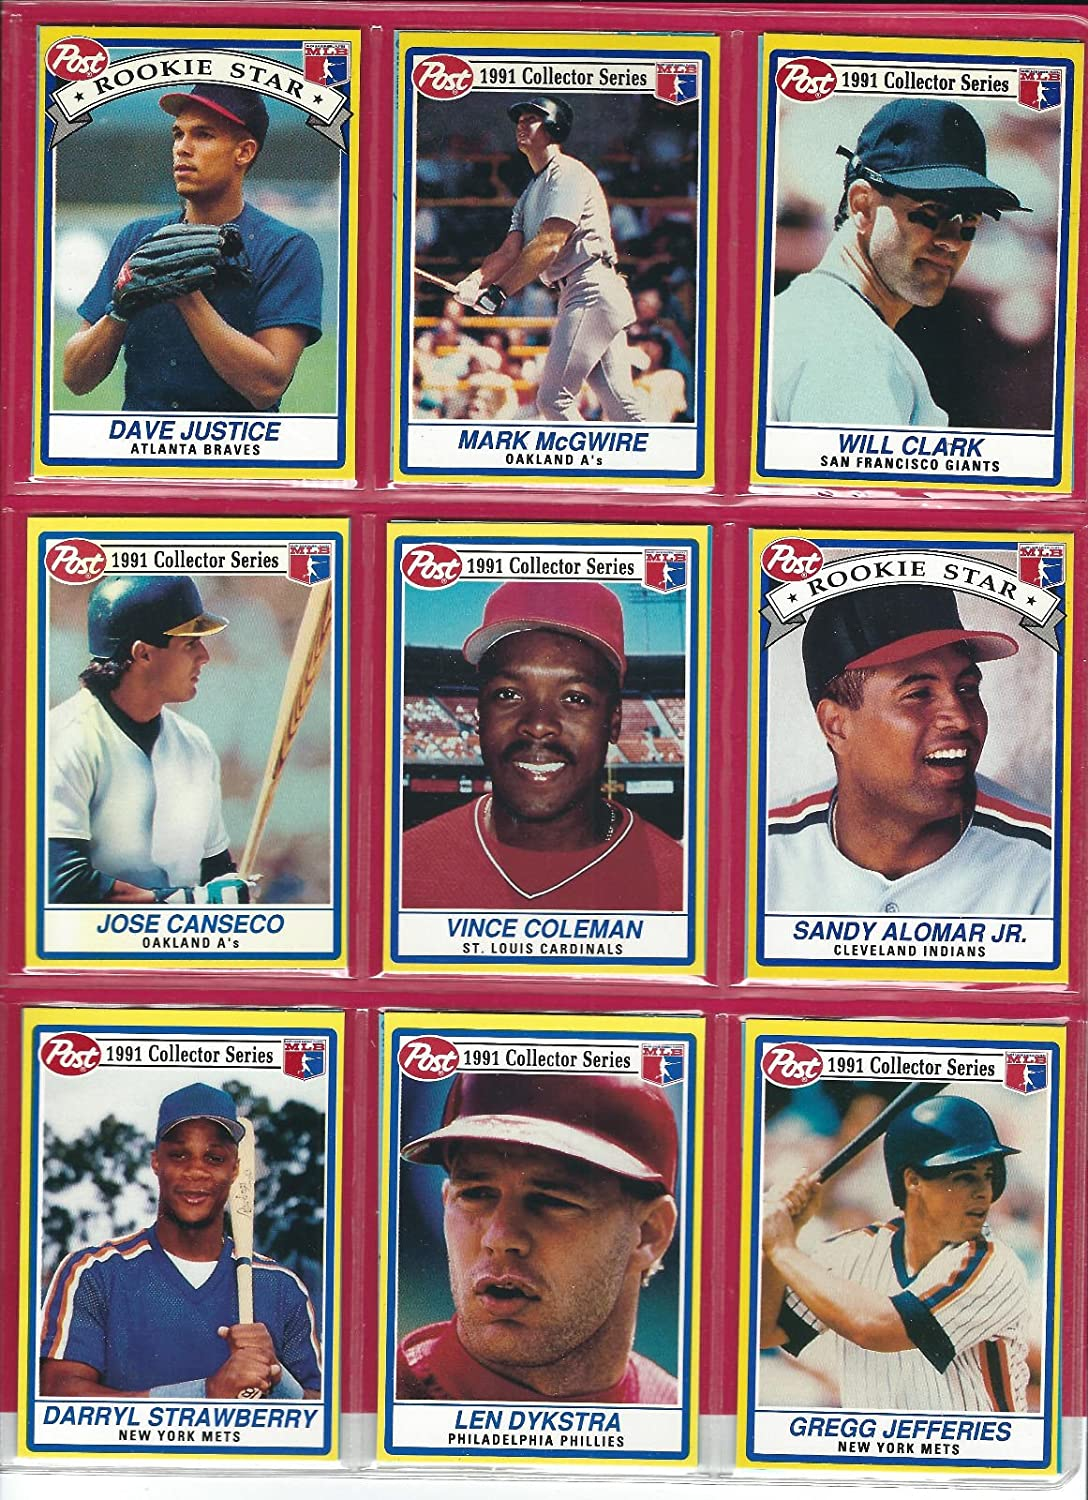 Amazoncom 1991 Post Collector Series Set Of 30 Cards